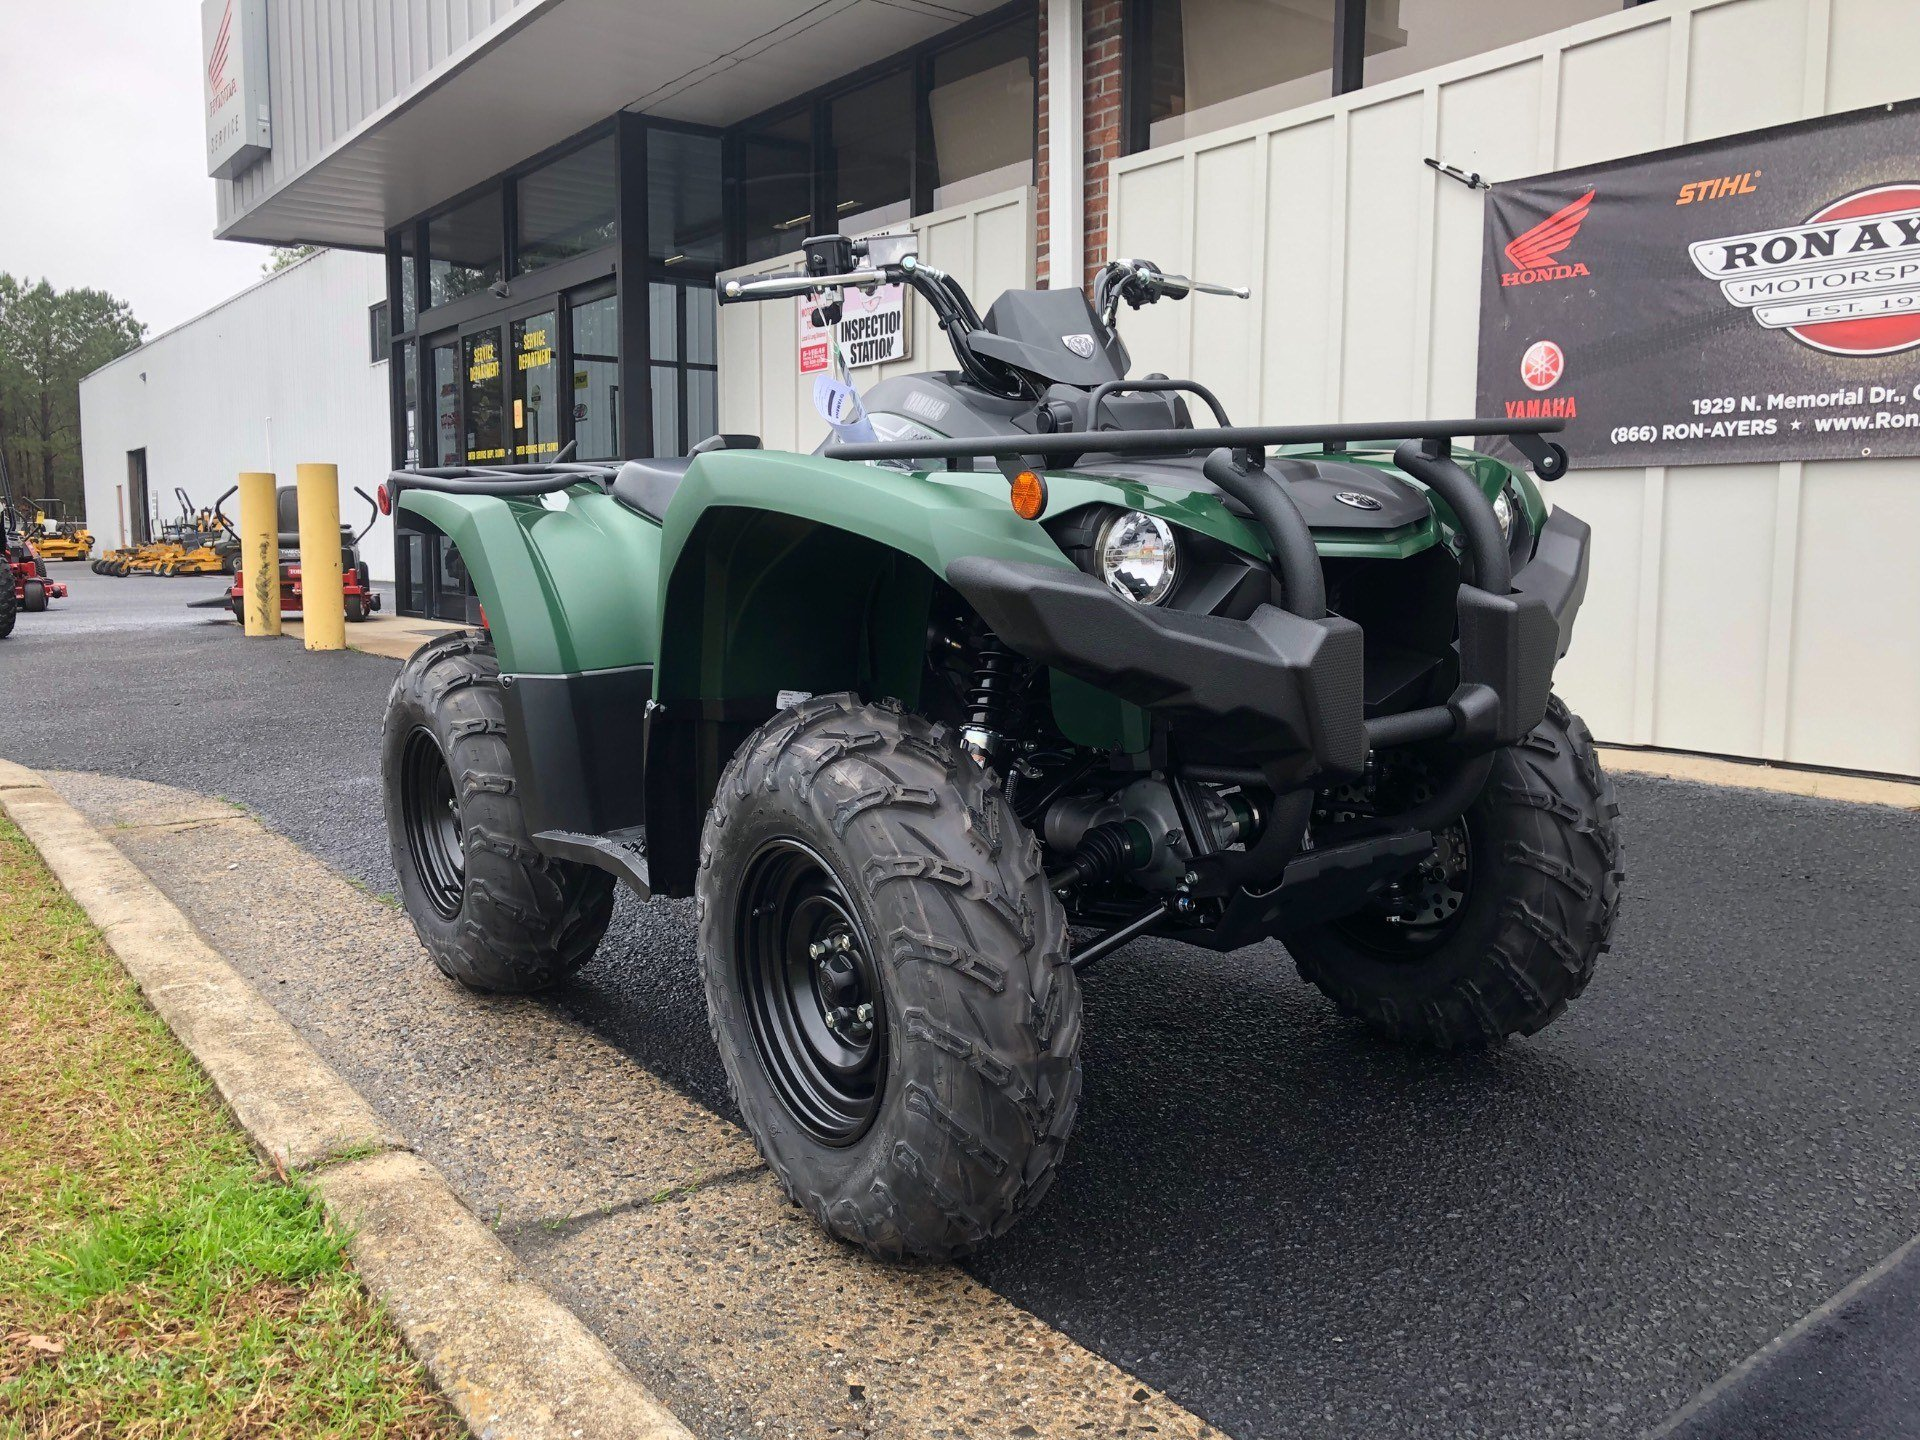 2019 Yamaha Kodiak 450 in Greenville, North Carolina - Photo 5